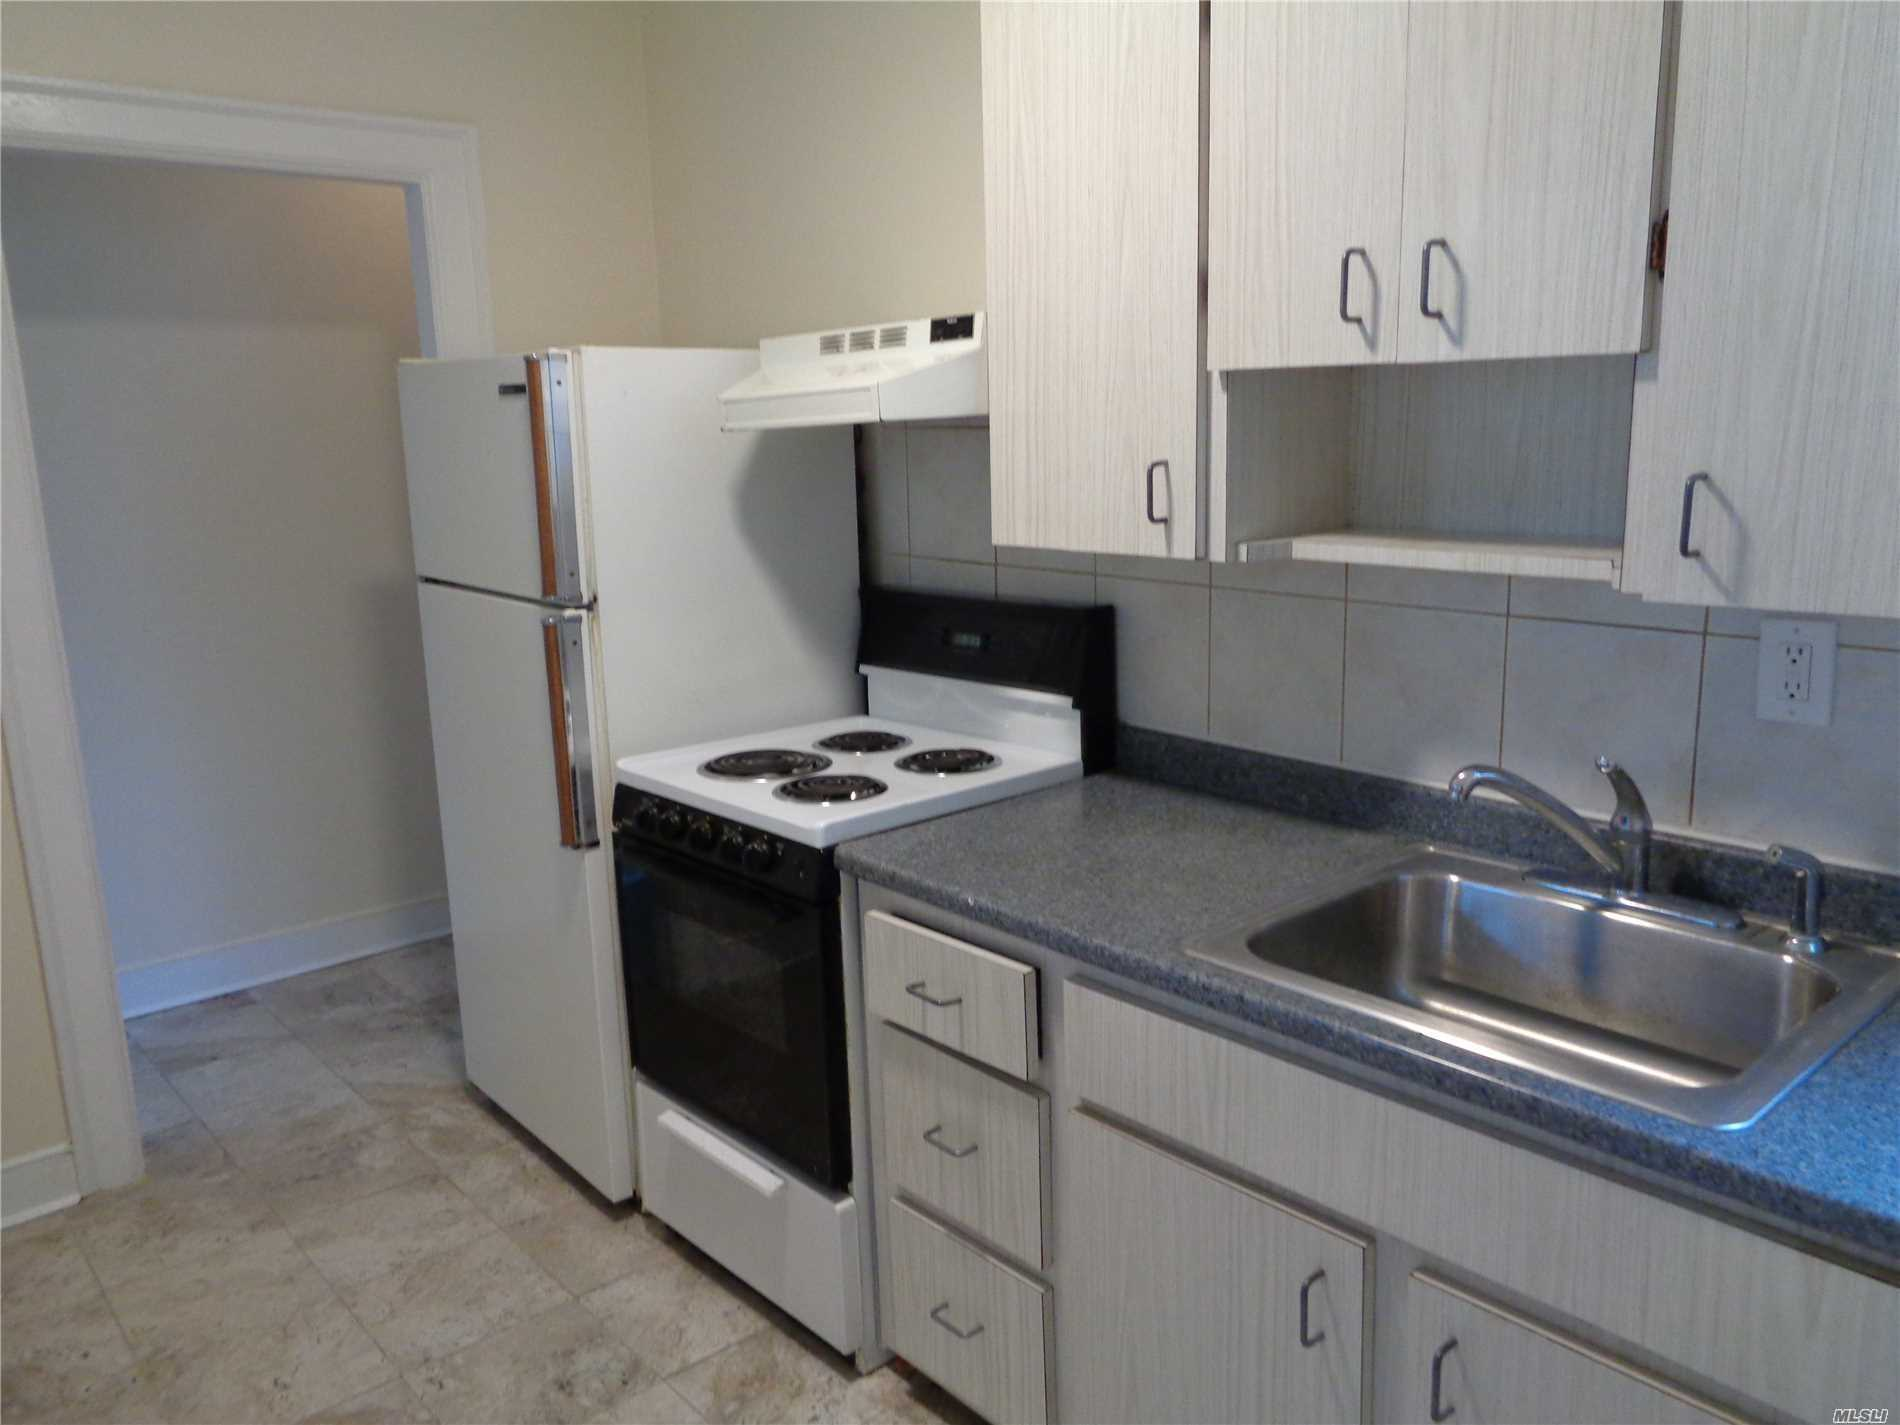 Location! Location! Location! 2nd Floor Apartment In Mixed-Use Building. This Mint 1-Bedroom Apartment Features Eat-In-Kitchen, Lr/Dr, Full Bath And Hardwood Floors. Stove Is Electric. Near To Shopping, Lirr And Entertainment. 1 Parking Spot. Please No Use Of Candles! A Must See!